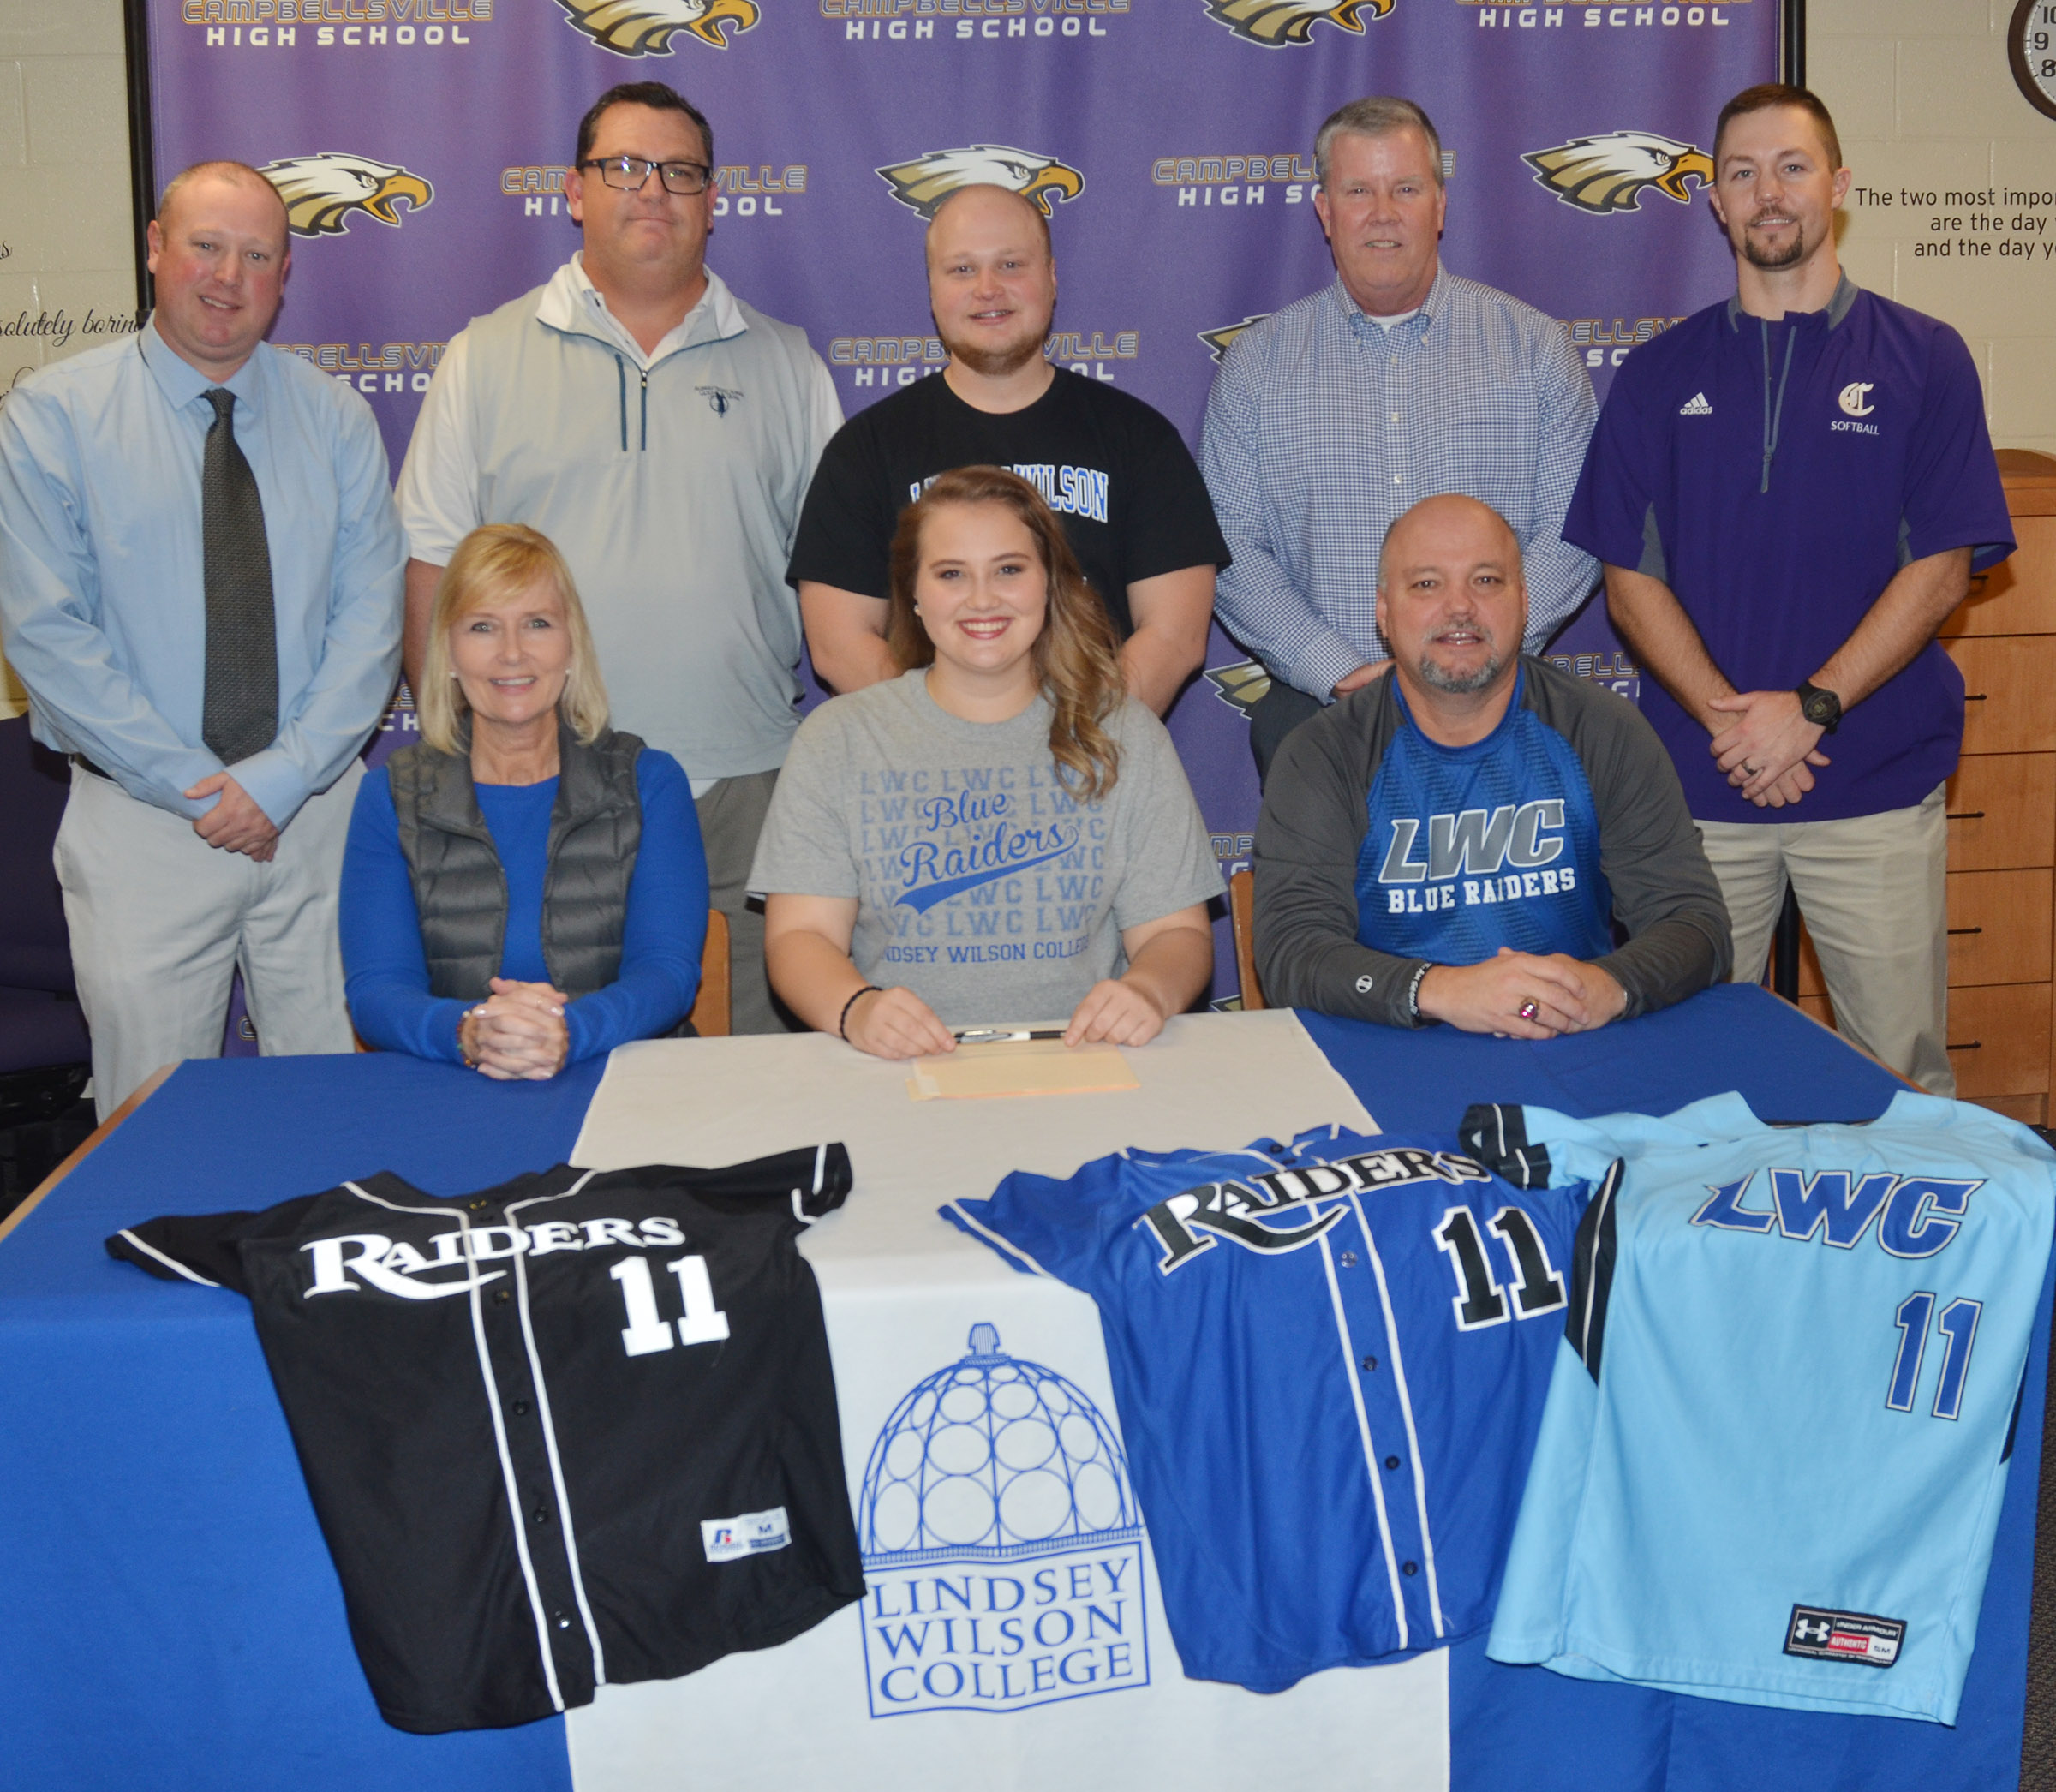 CHS senior Brenna Wethington has signed to continue her softball career at Lindsey Wilson College. She is pictured with her parents, Sheila and John Wethington. From left, back, LWC head softball coach David Dews, one of her first softball coaches Sarge Pollock, her brother Mason Wethington, another of her first softball coaches Jim Sabo and CHS head softball coach Weston Jones.